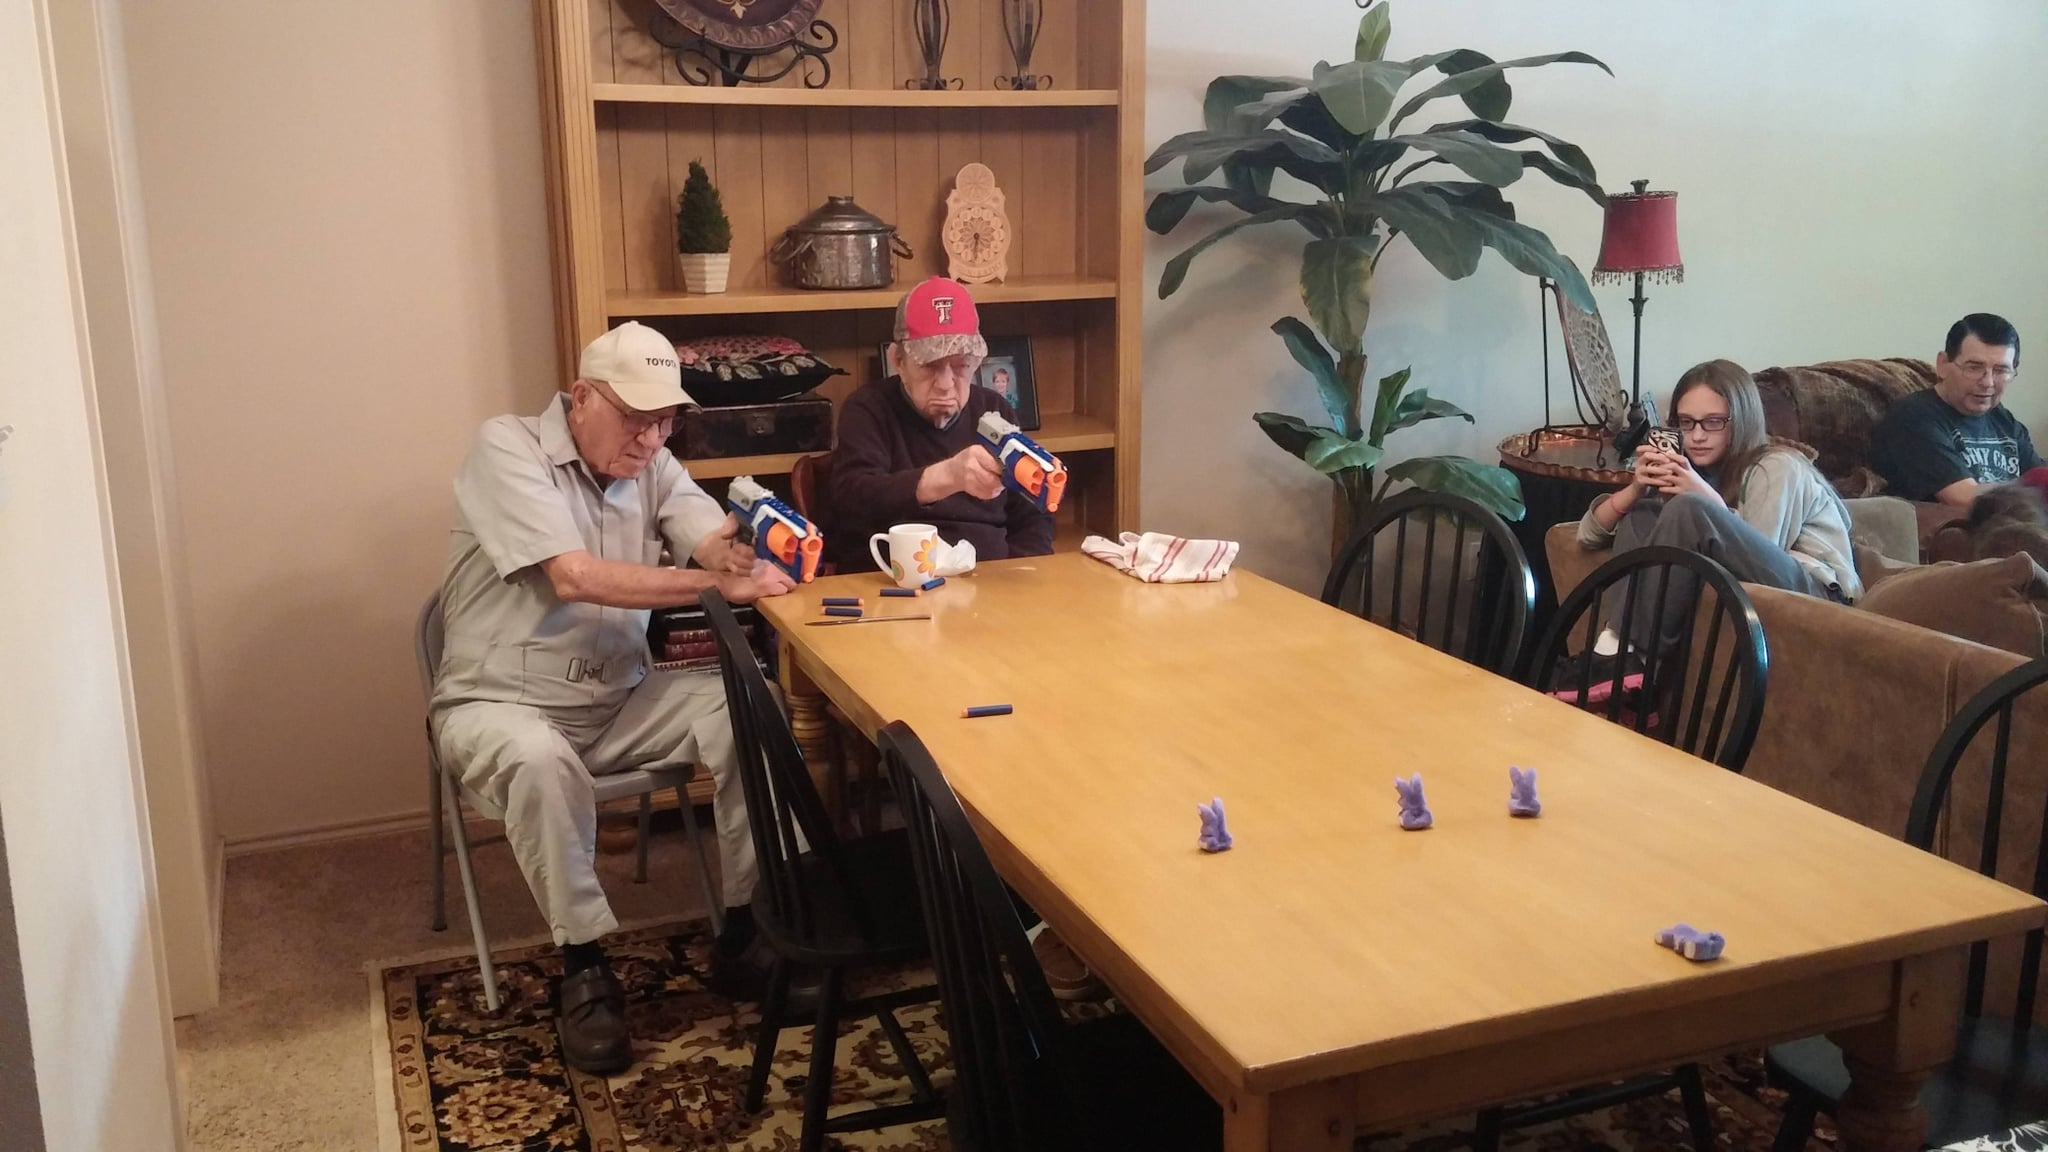 """""""Why is Nerf marketed to kids? I've never seen two 84 year olds have more fun."""" Source: Reddit user knicoled via Imgur"""